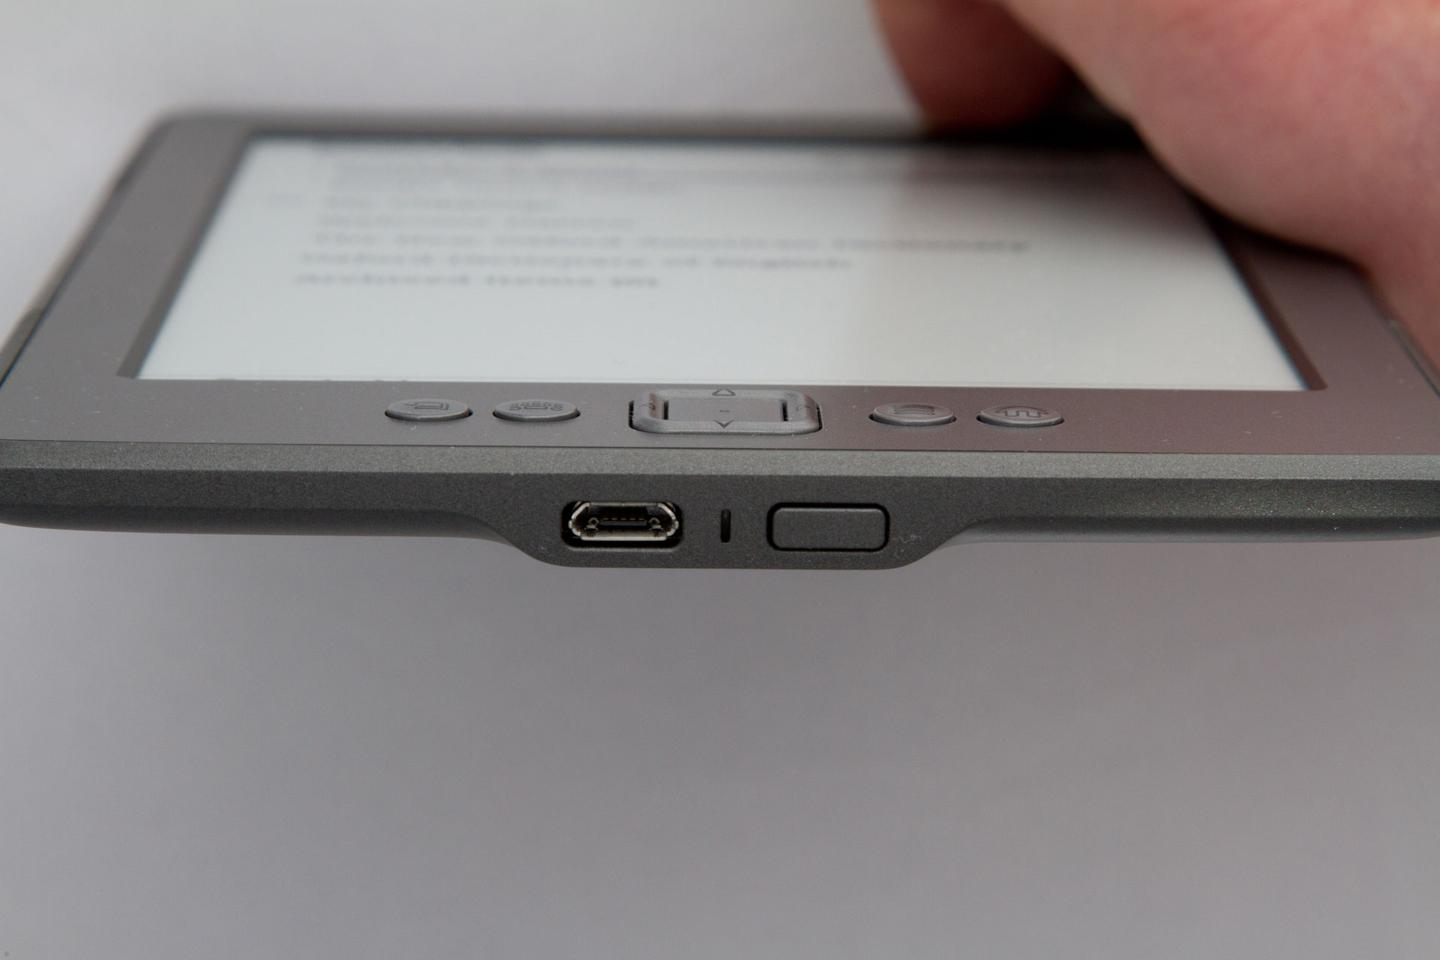 micro-B USB port and power button on the bottom of the 2011 Kindle